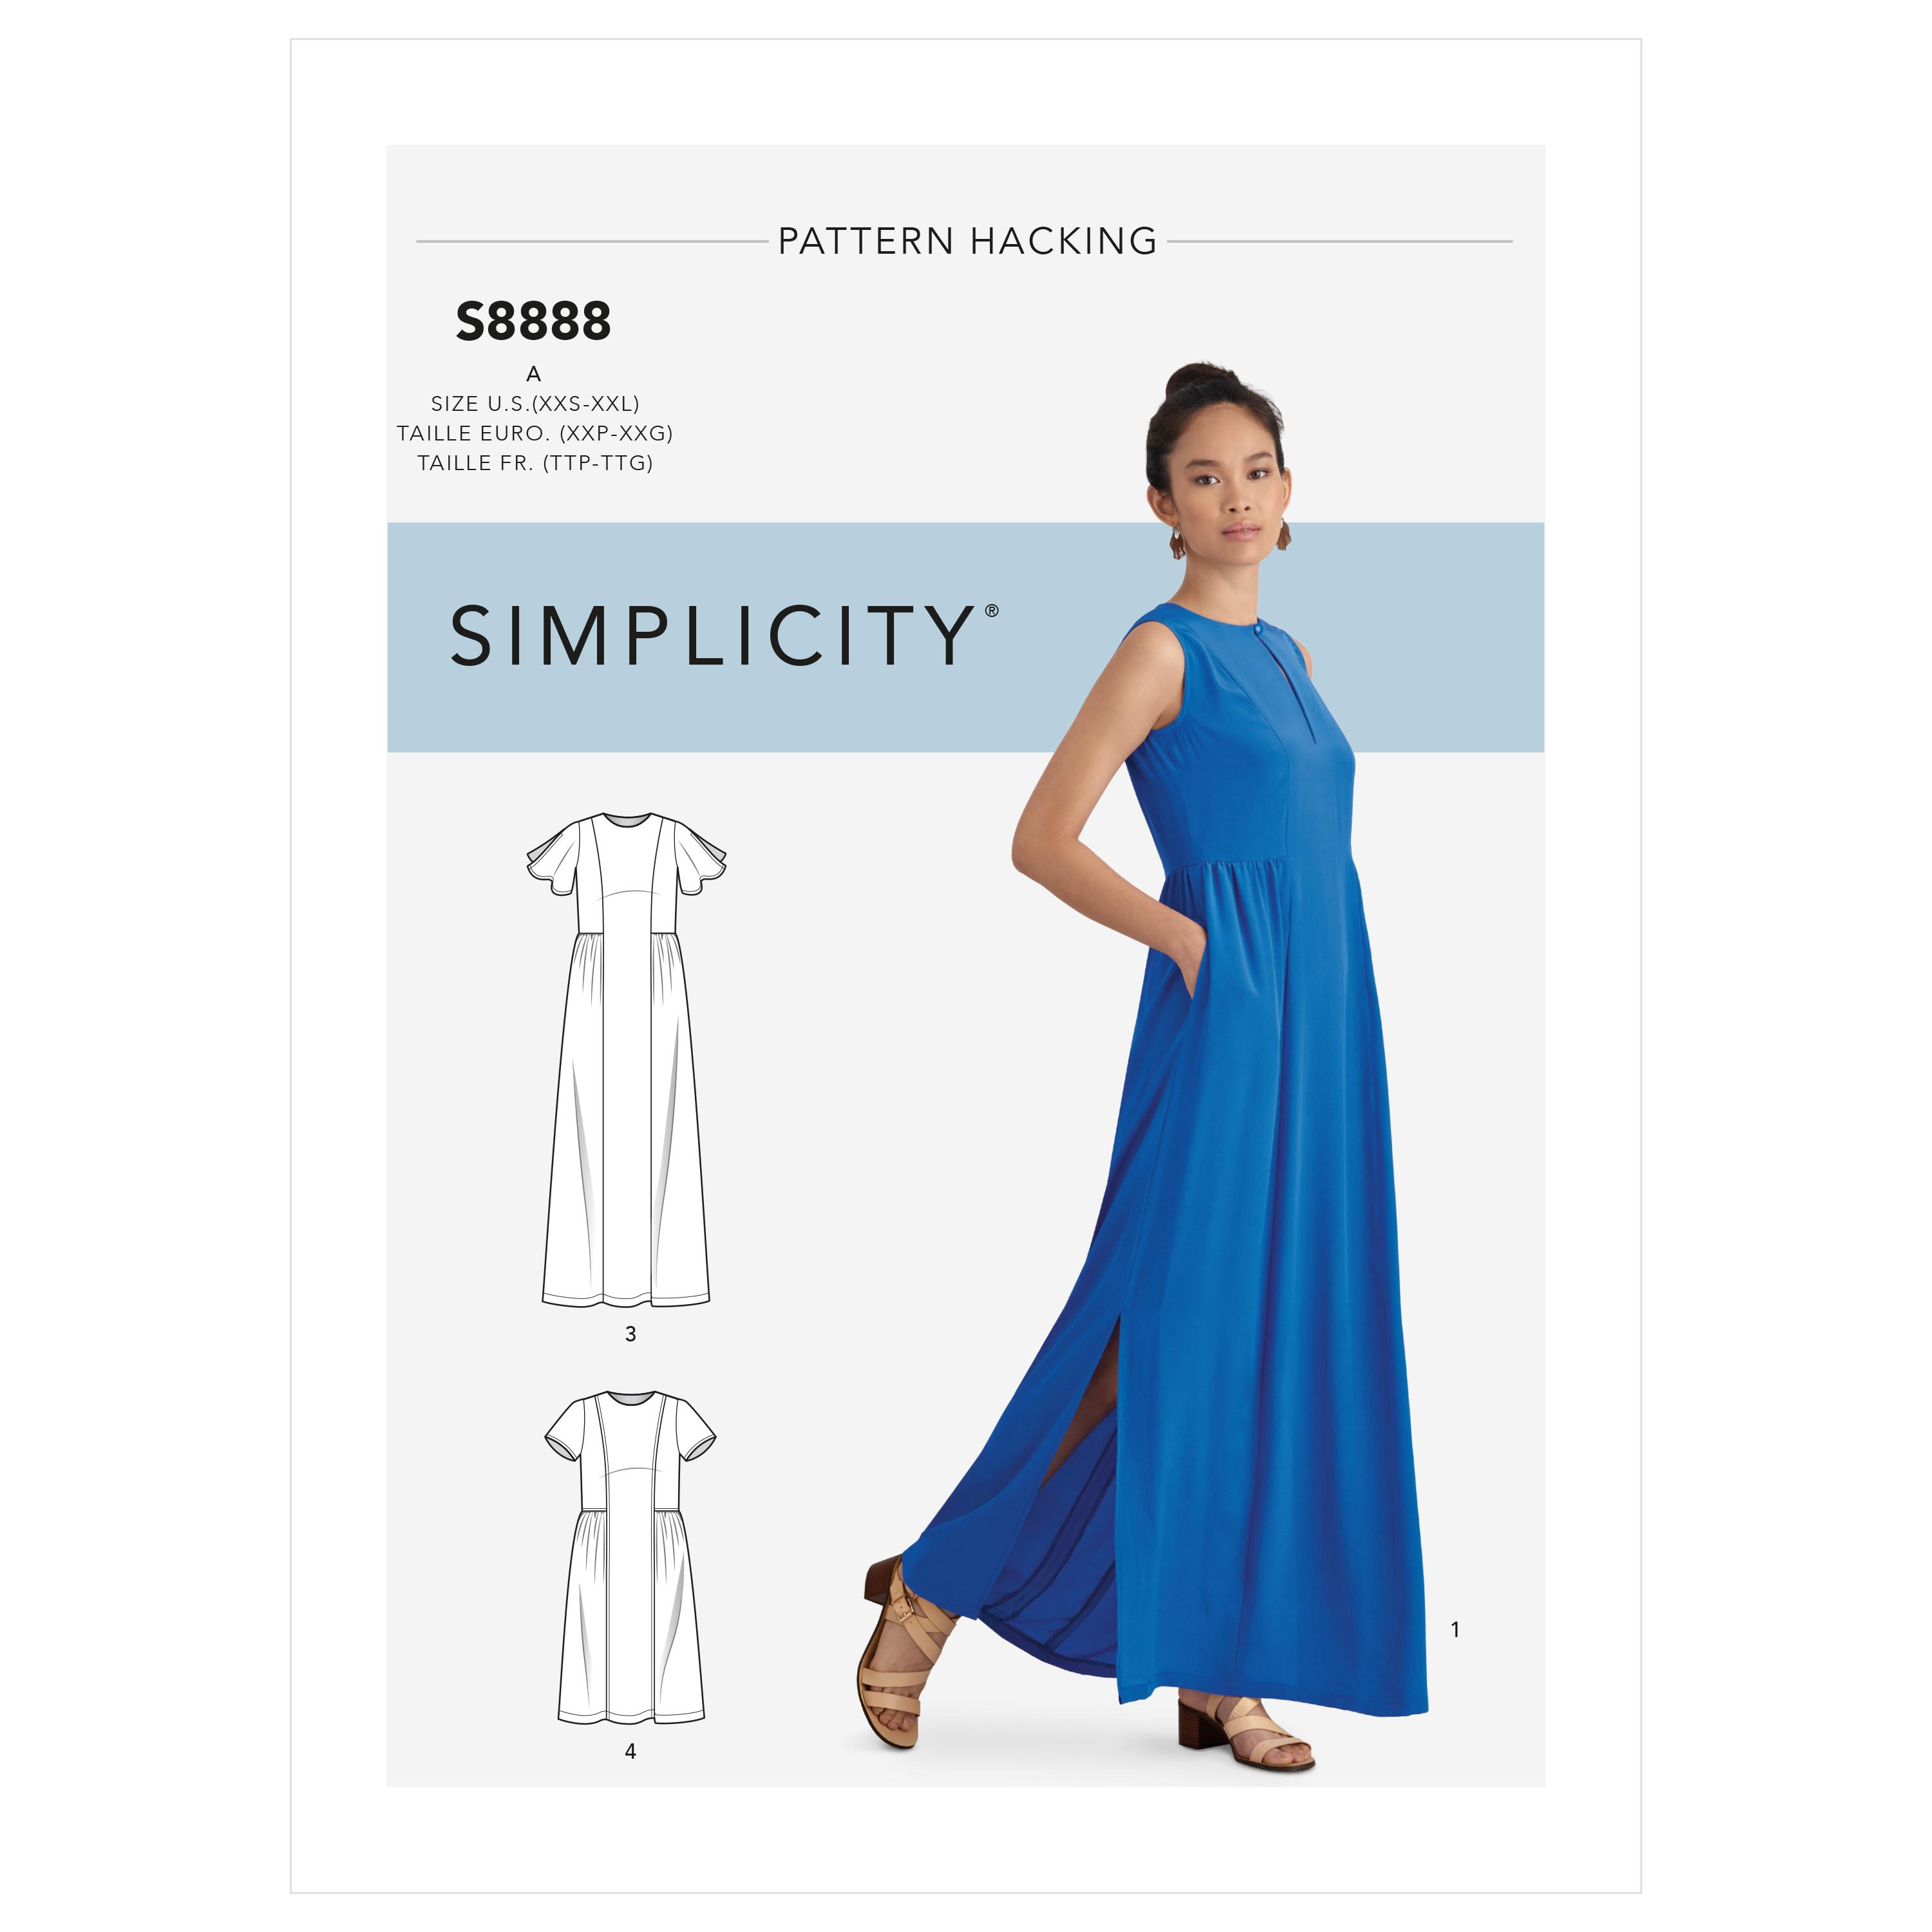 Simplicity S8888 Misses' Design Hacking Dress